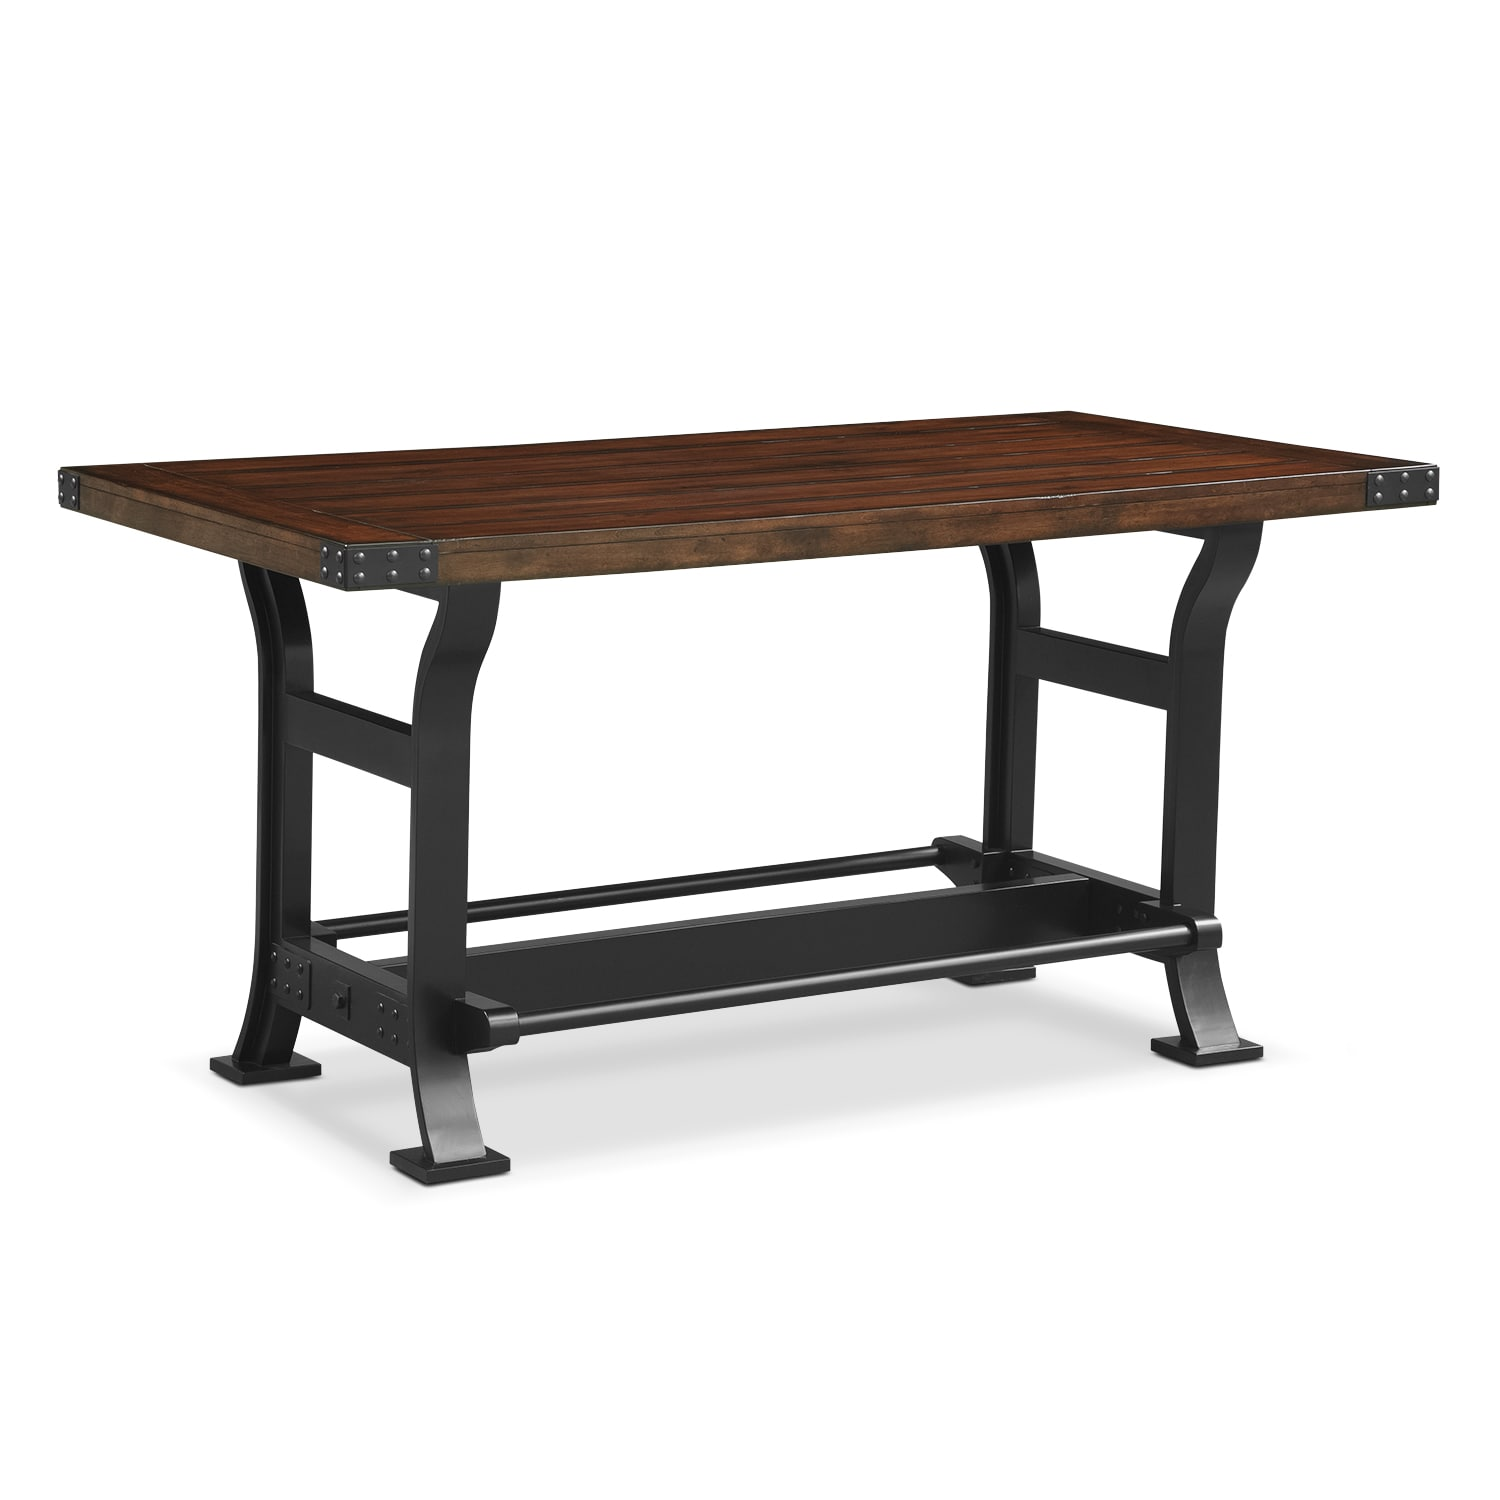 Dining Room Furniture - Newcastle Counter-Height Dining Table - Mahogany